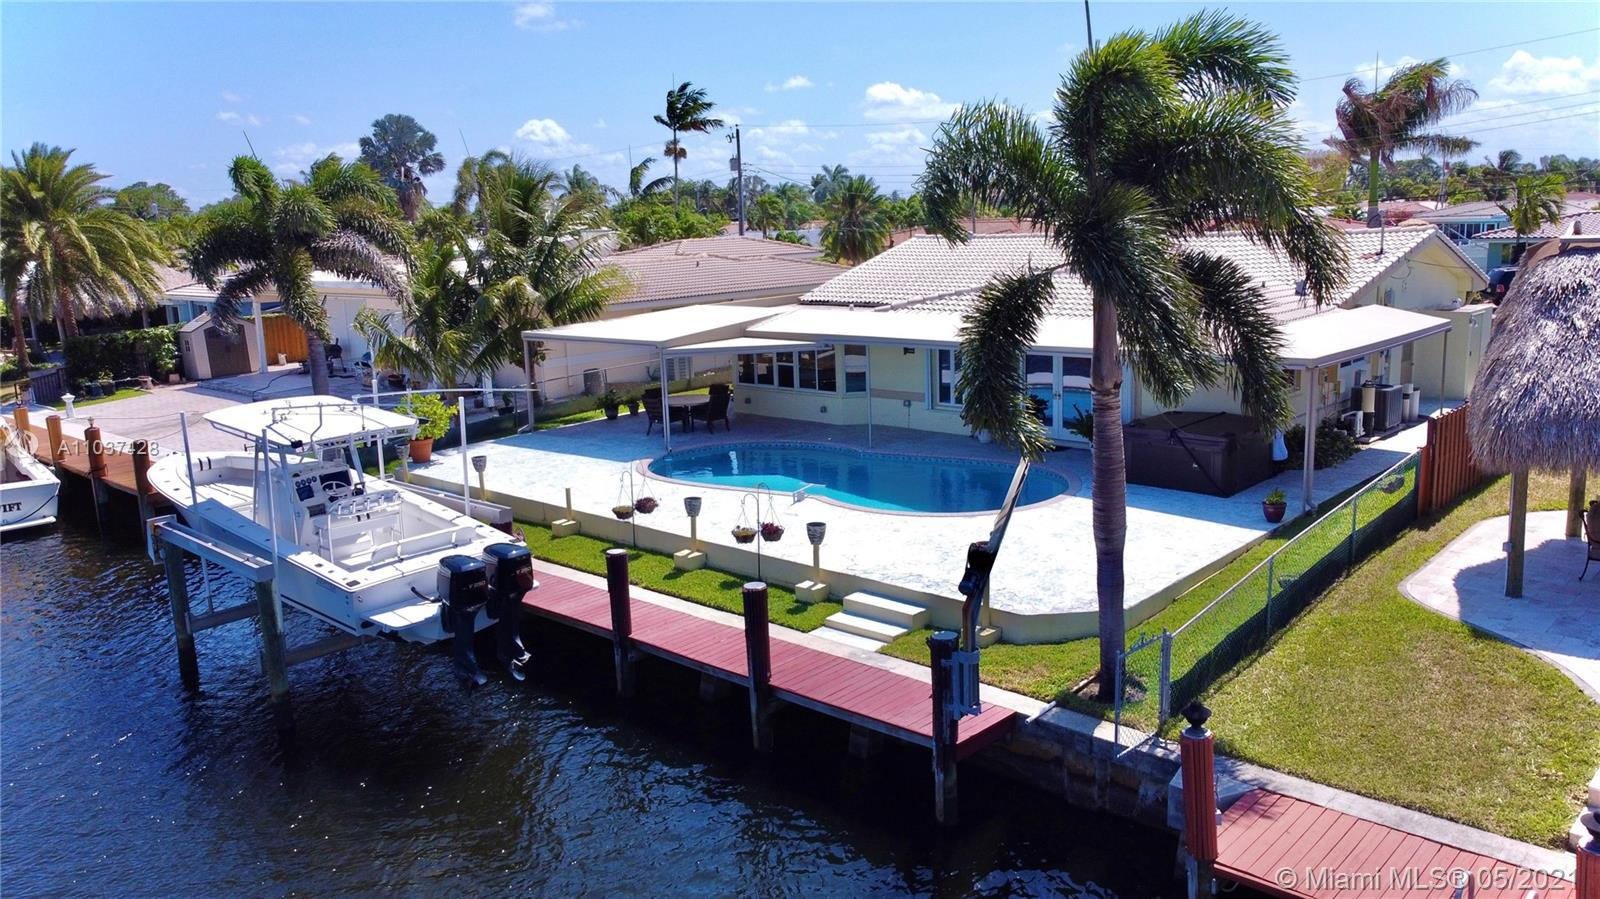 South Florida's Prime Ocean access 15 min,Deep Water Canal dream home, won't last long. With an 2,00